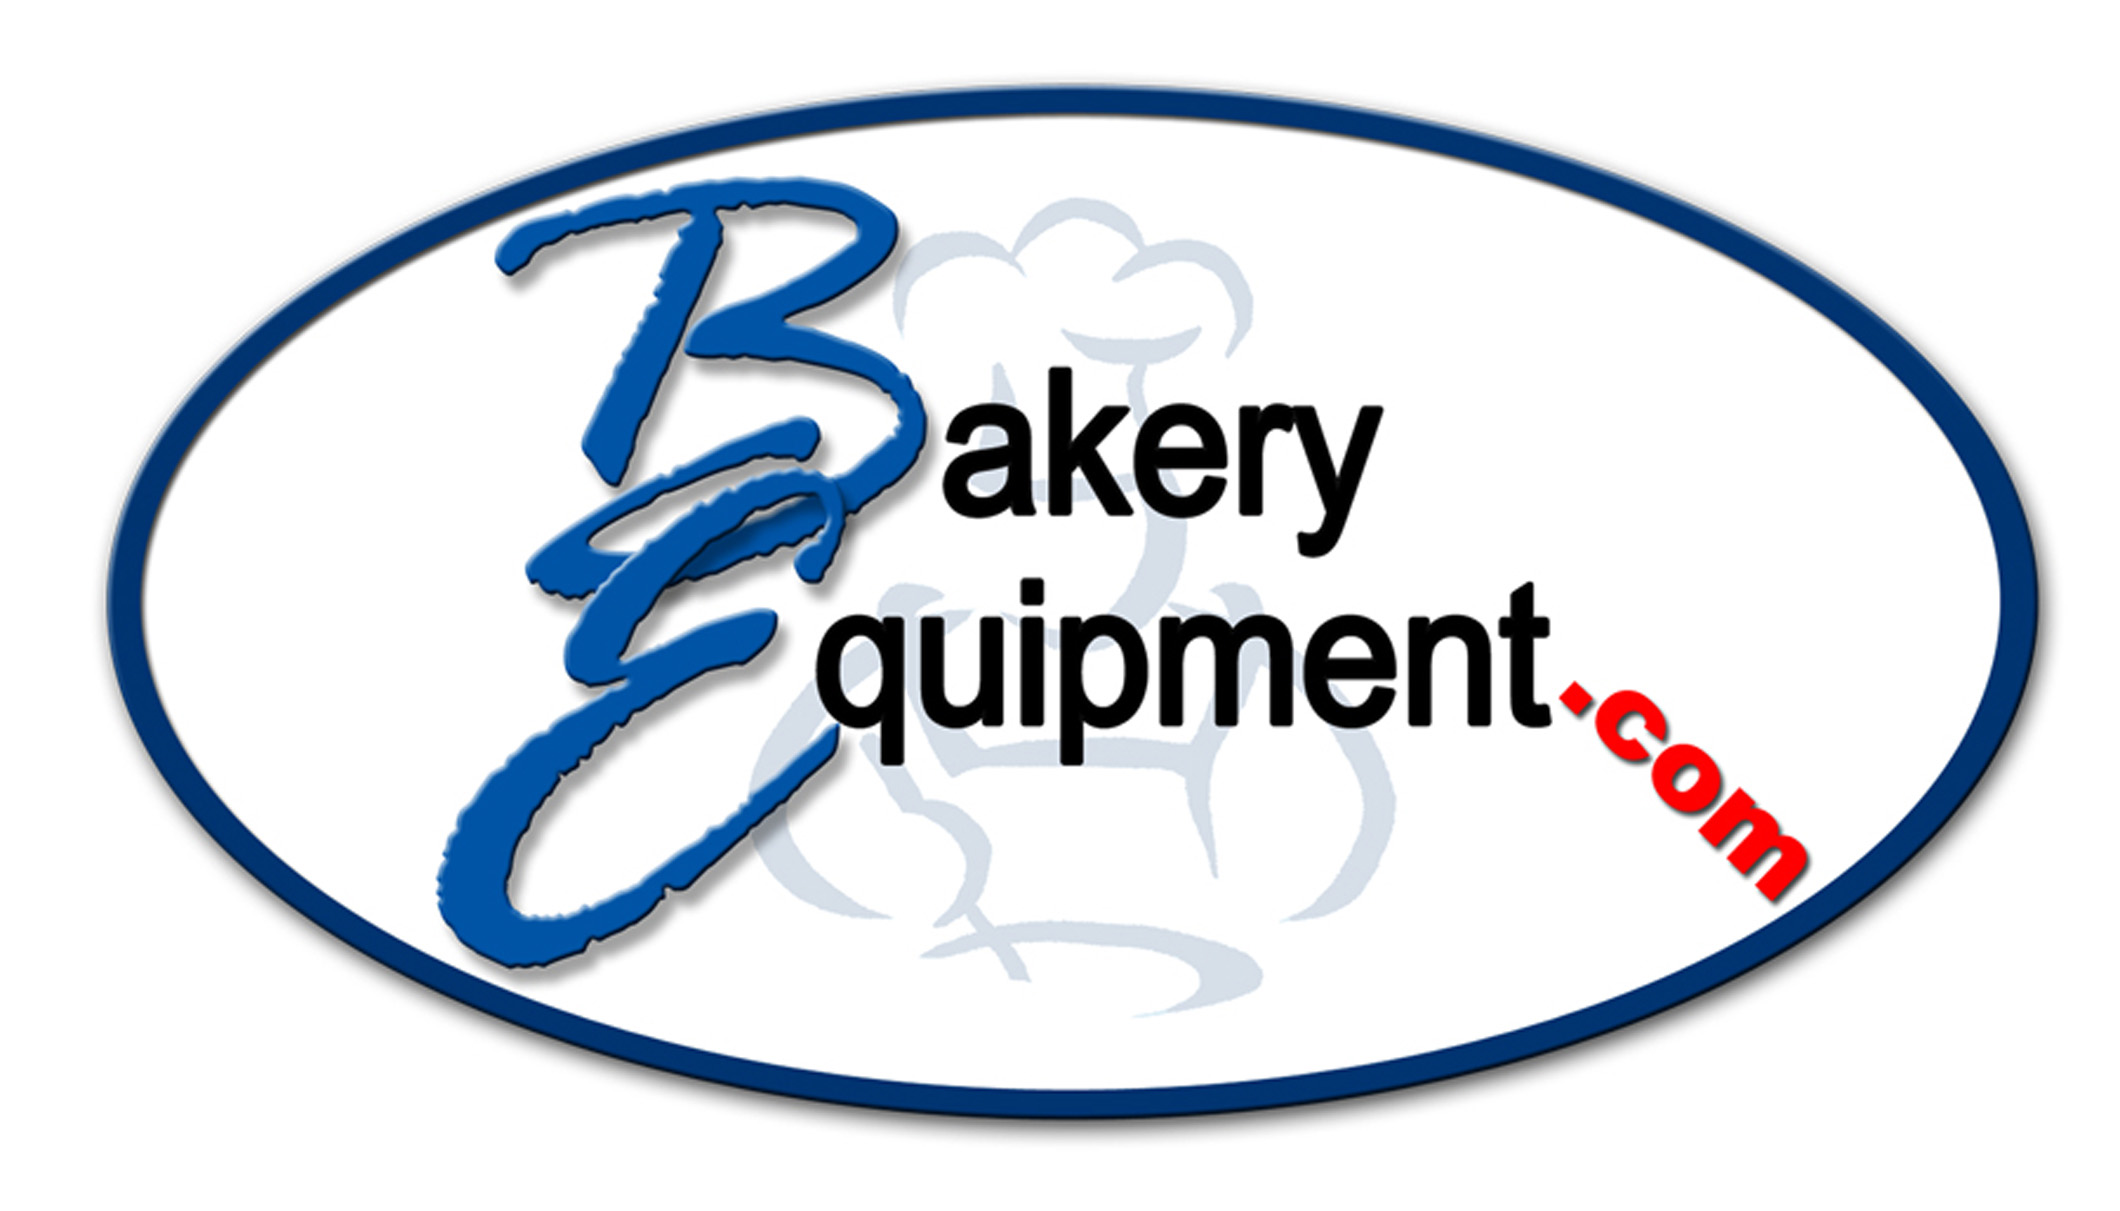 Bakery Equipment Inc 45b531e01616fe0a6b2d8d51583b36a7 1398880686